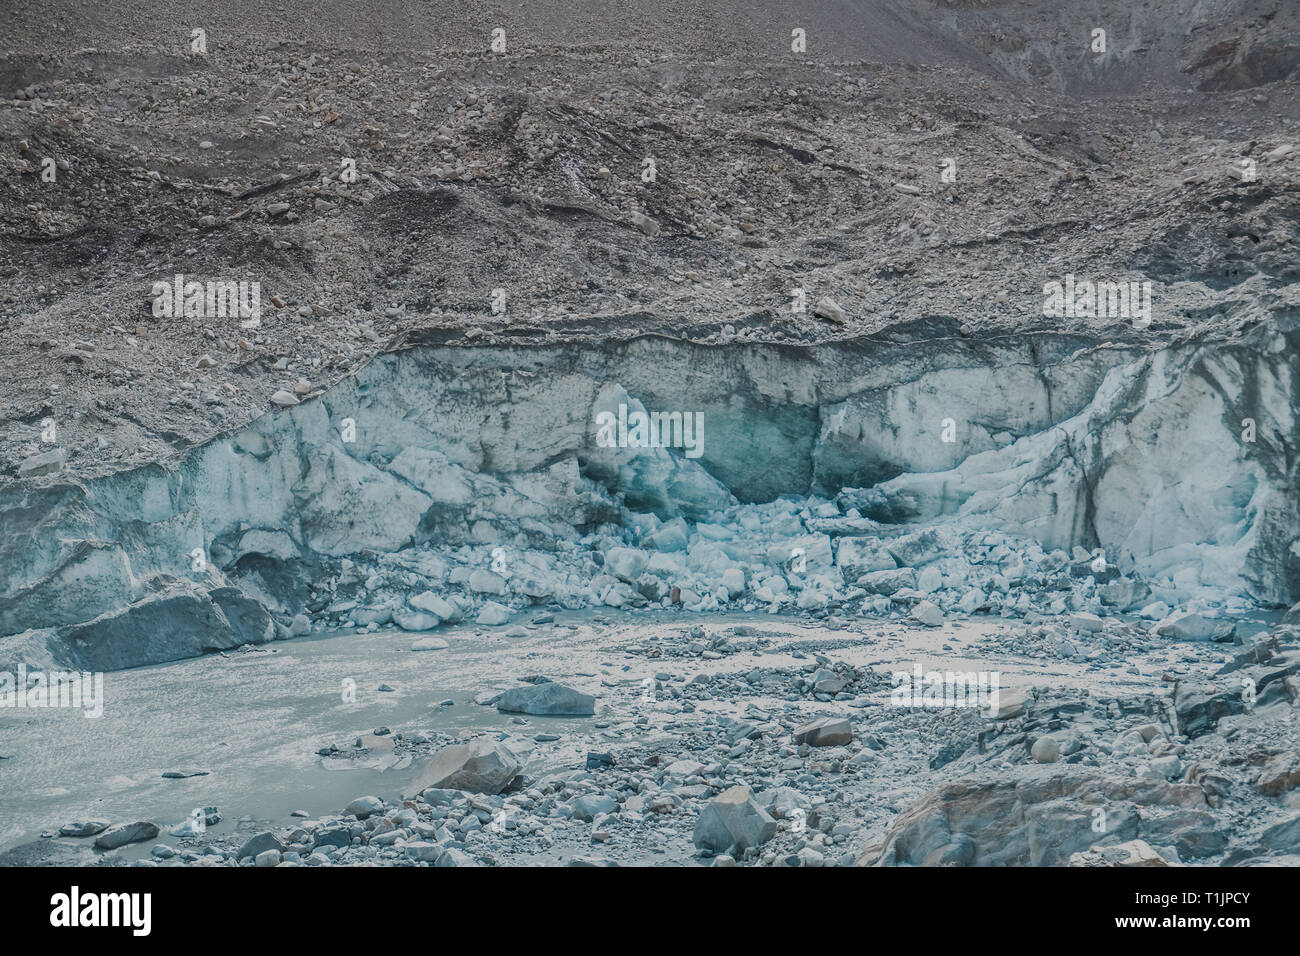 Cracking and melting of Passu glacier. The glacial surface is covered with rubble, boulders and mud. Gojal, Upper Hunza. Gilgit Baltistan, Pakistan. - Stock Image